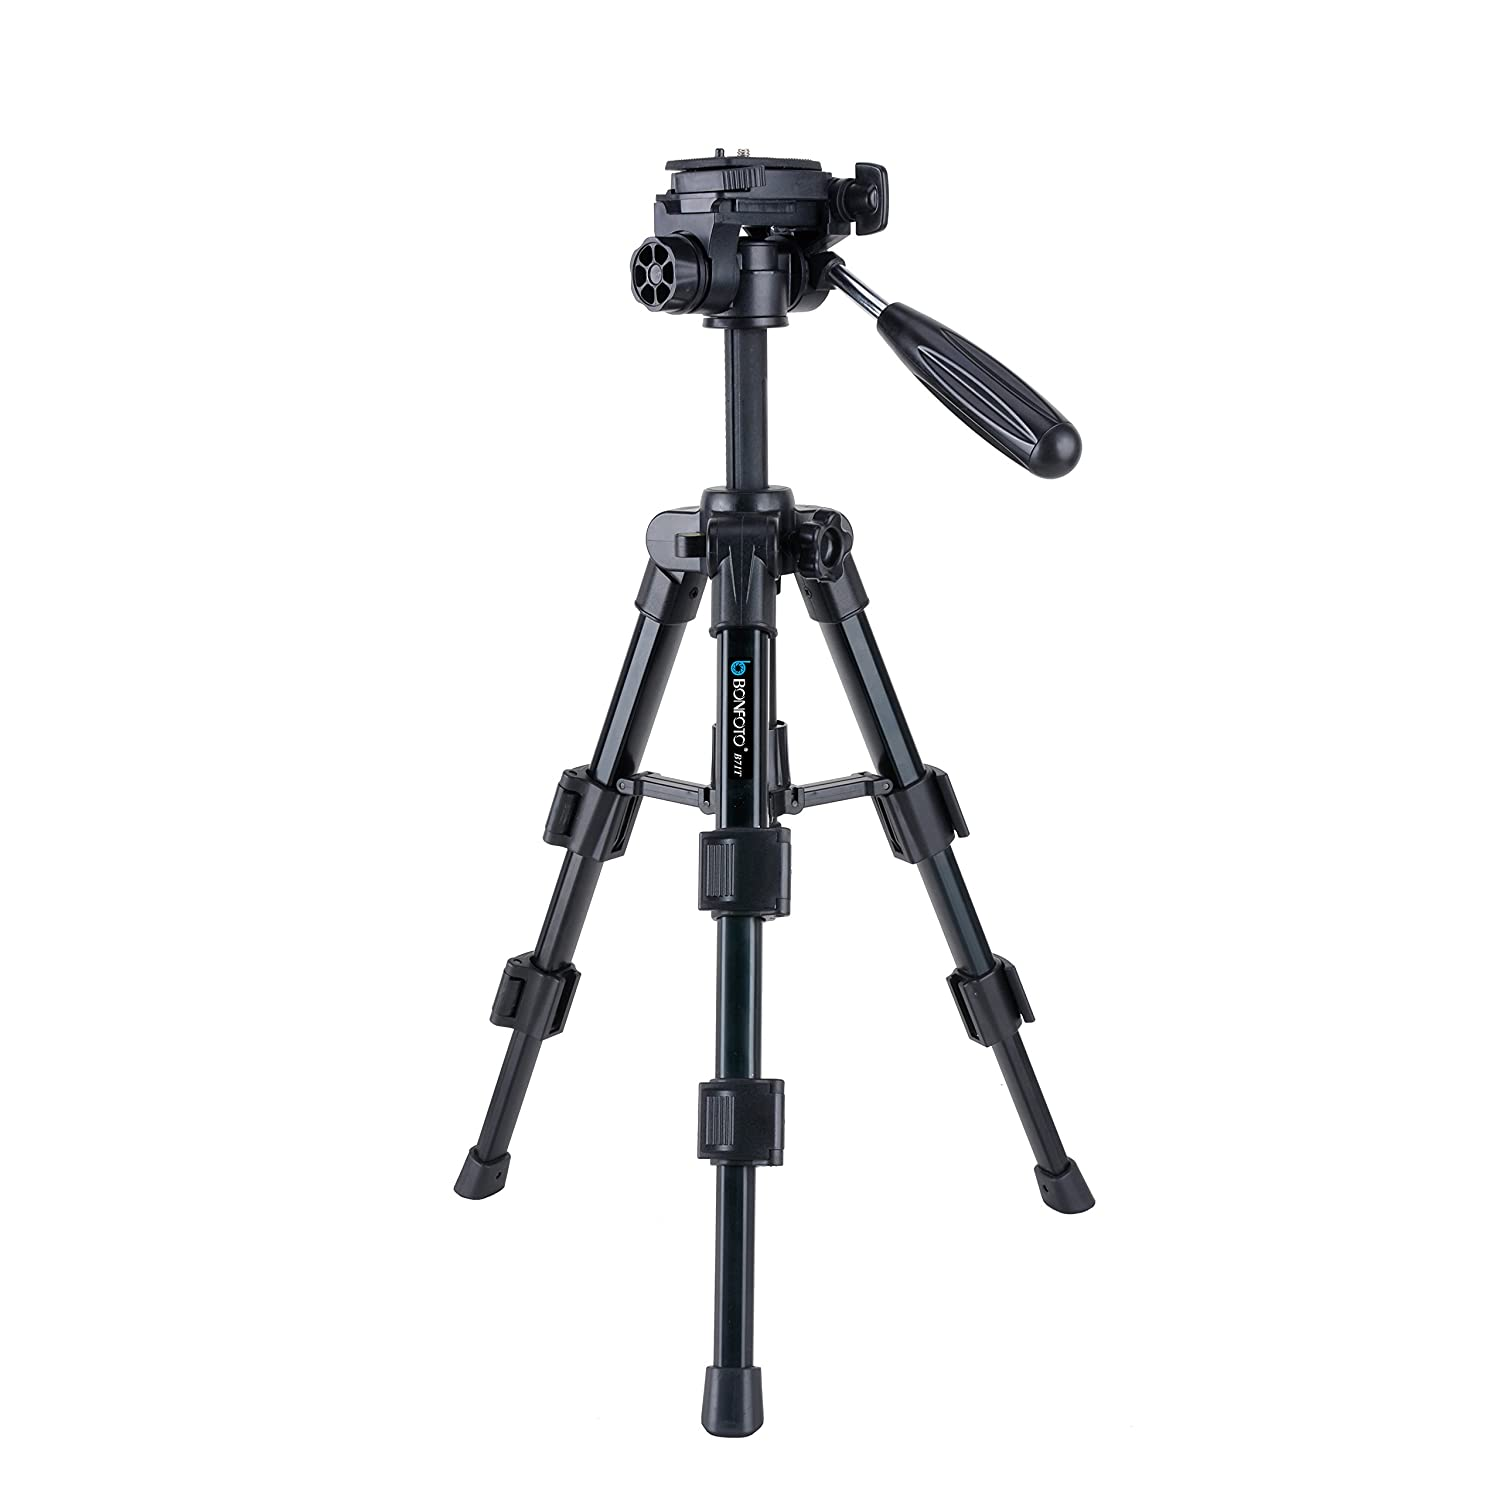 bonfoto mini tripod lightweight portable aluminum camera travel tabletop tripod ebay. Black Bedroom Furniture Sets. Home Design Ideas